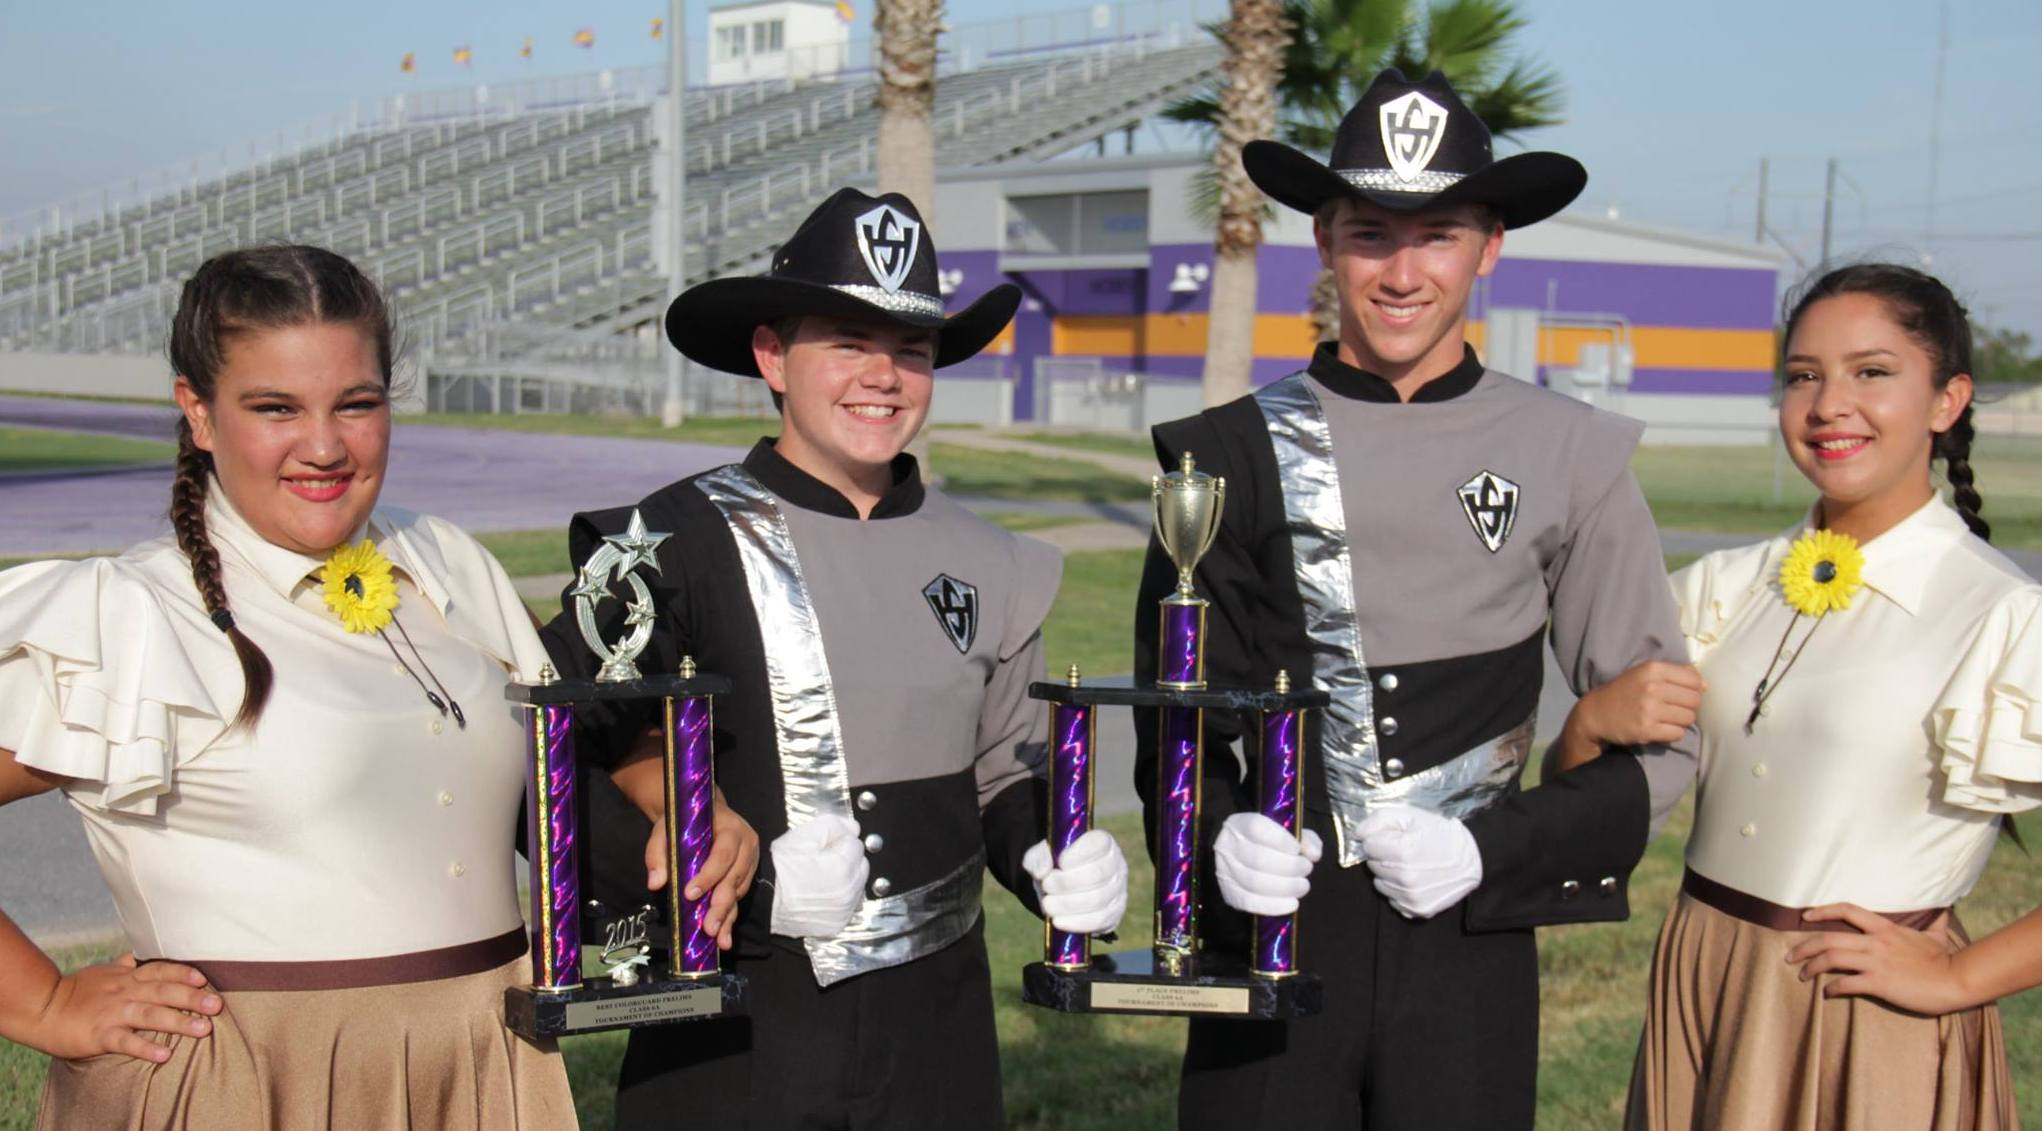 Big Red Cardinal Band and Mighty Hawk Band: Grand Champions for second week in a row